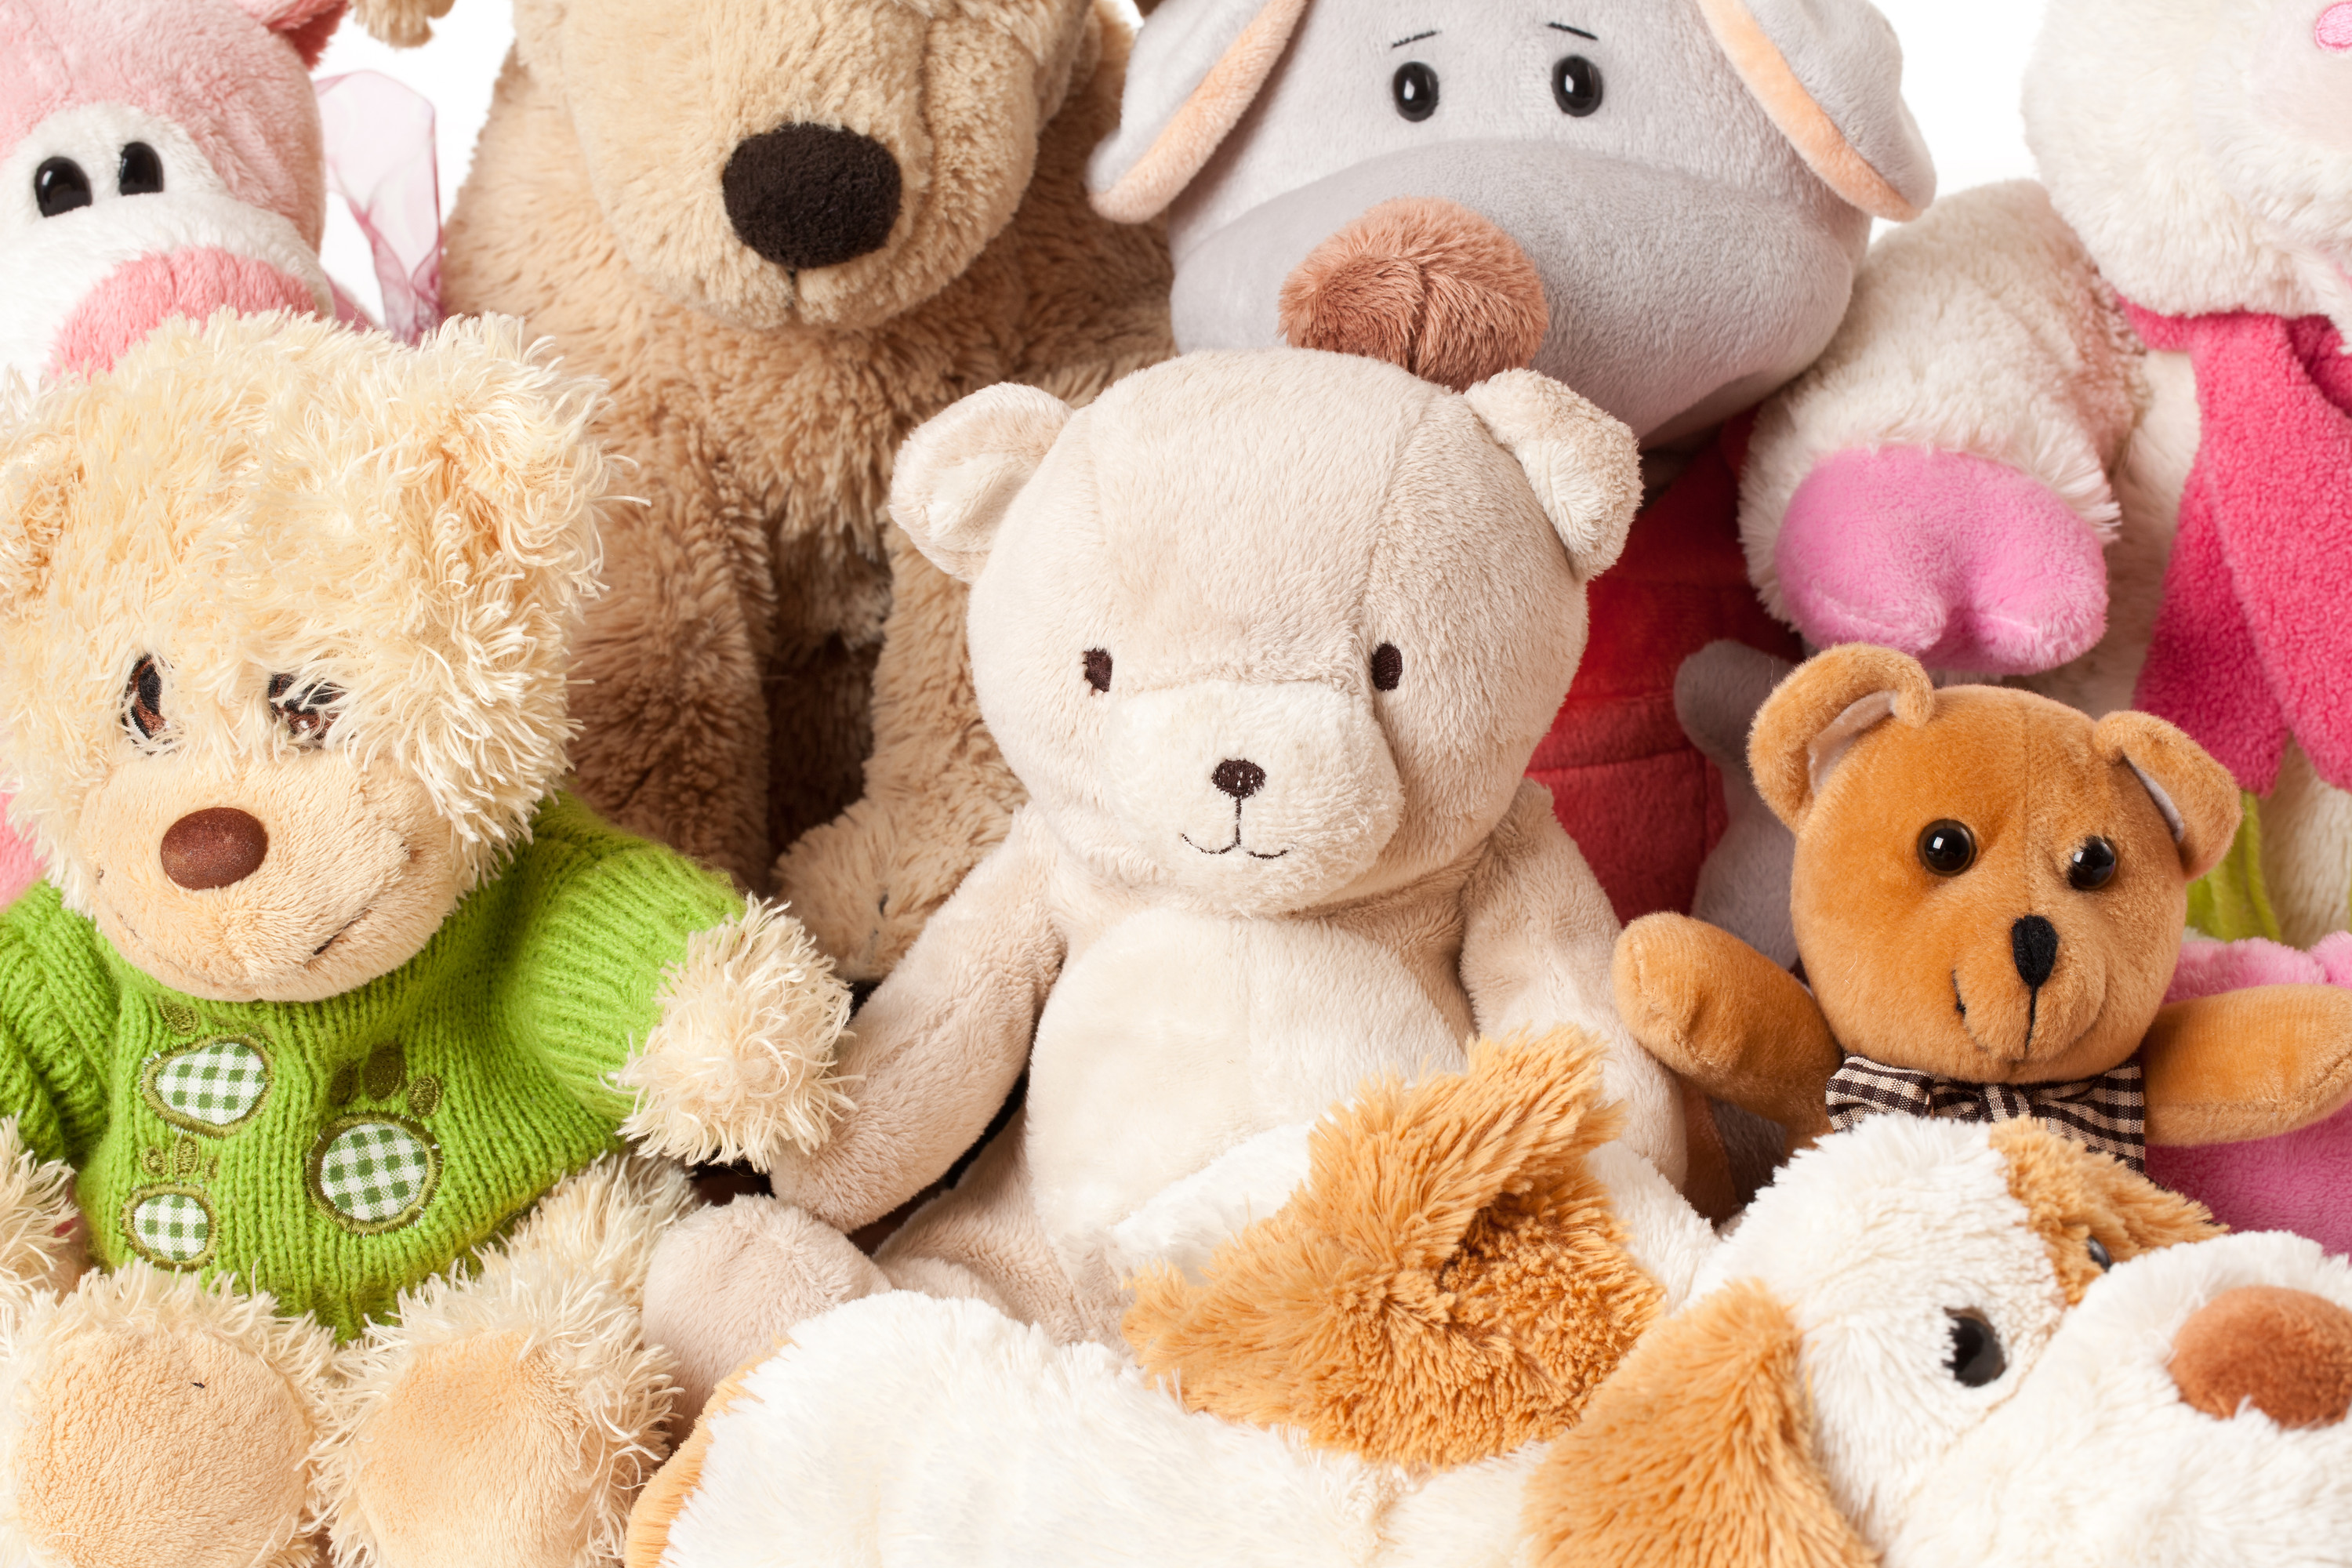 Corvette Club donates teddy bears to Saugeen Shores police and fire services - BlackburnNews.com